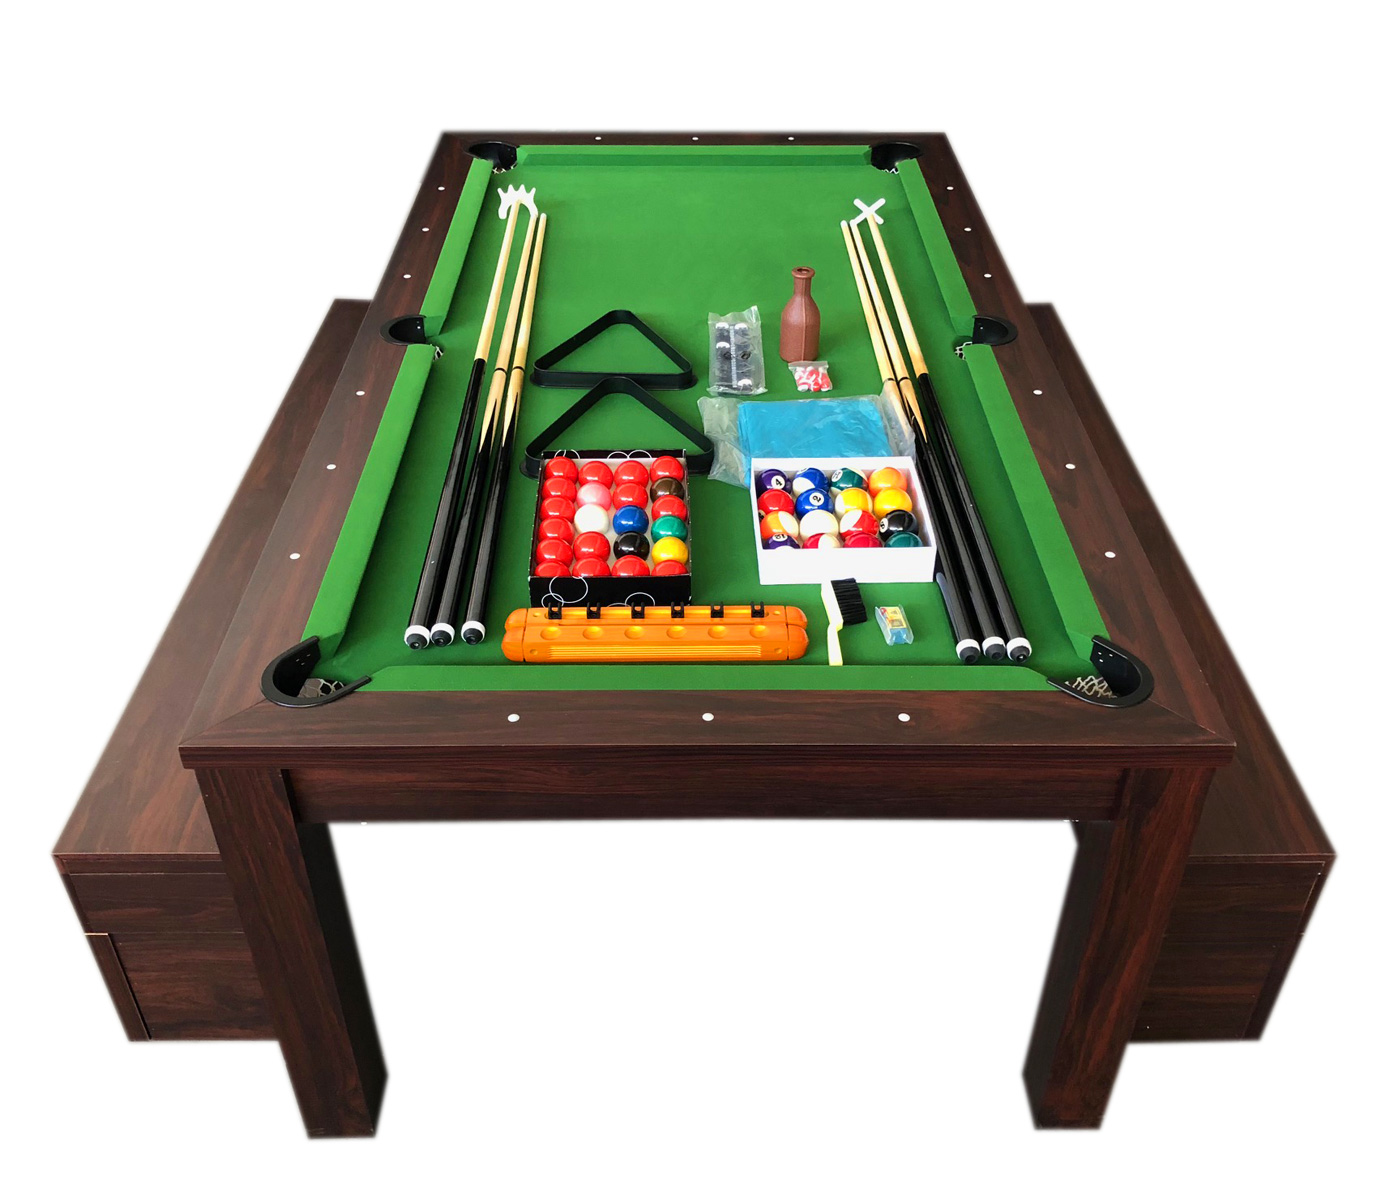 Fine Pool Table 7 Feet Green And Dinner Table With Benches Rich Green Pdpeps Interior Chair Design Pdpepsorg